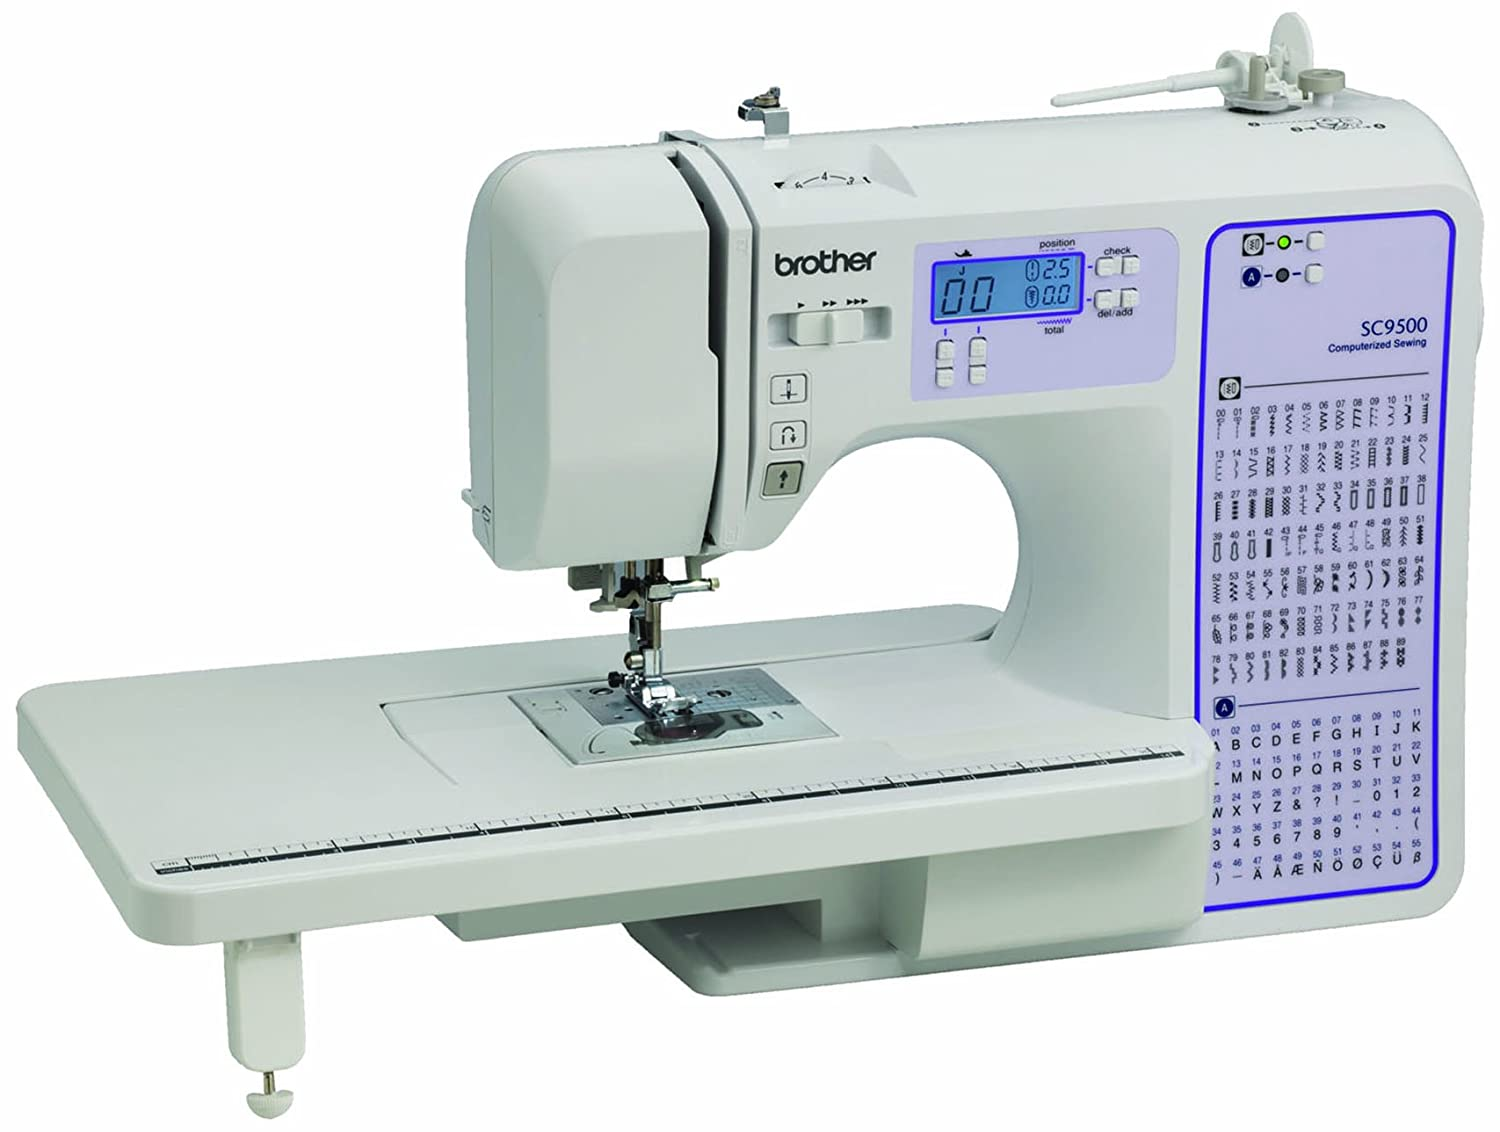 Brother SC9500 Computerized Sewing and Quilting Machine Reviews In 2019 1